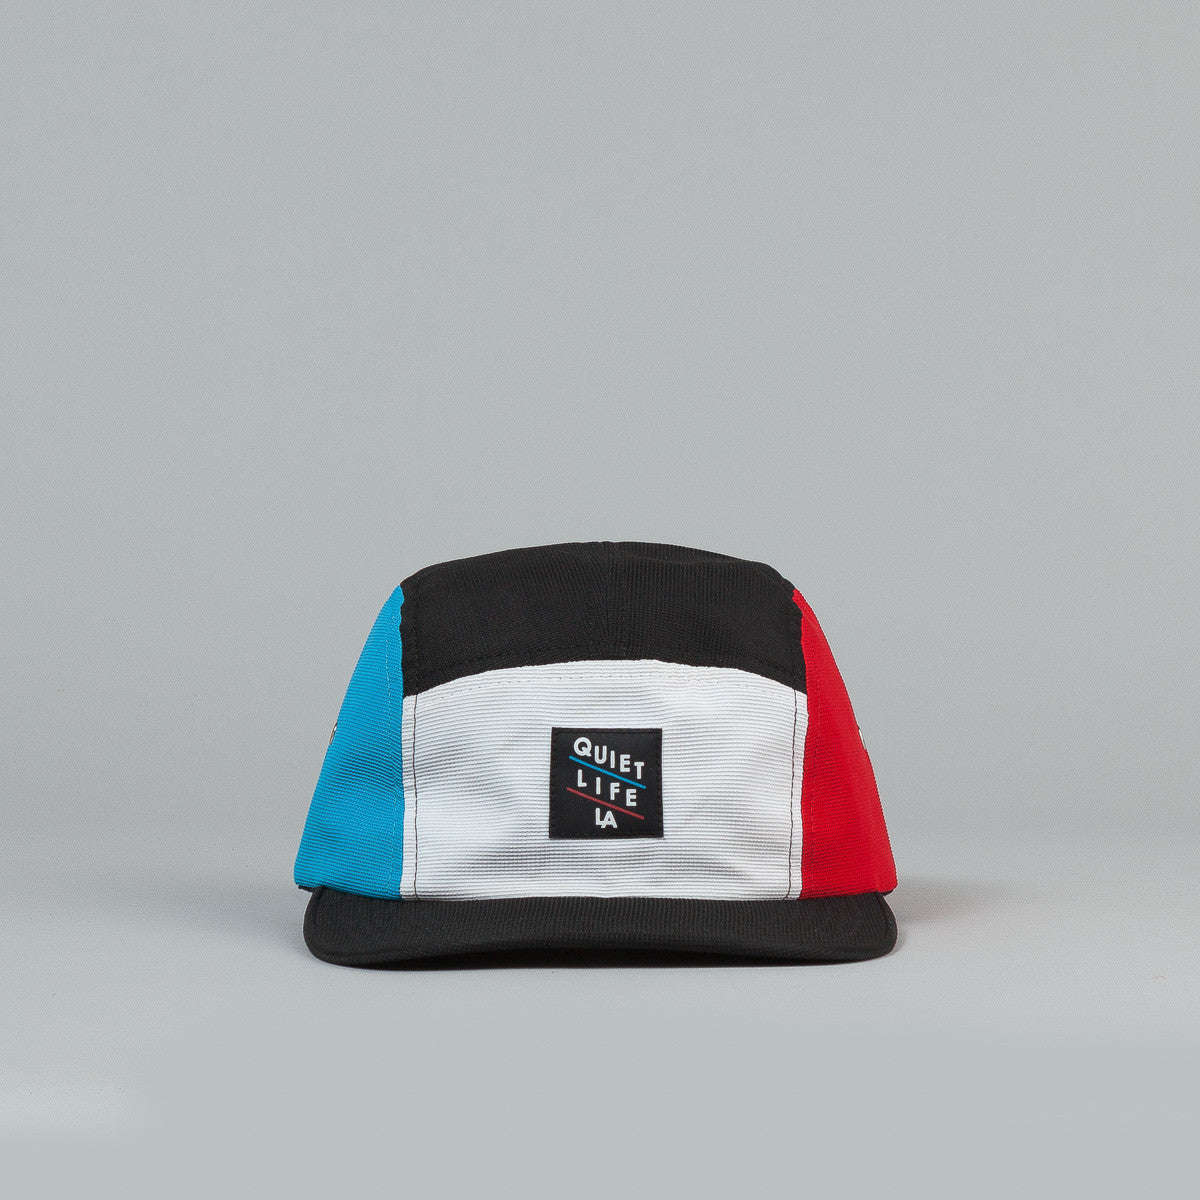 The Quiet Life Aruba 5 Panel Cap - White Front / Red & Blue Sides